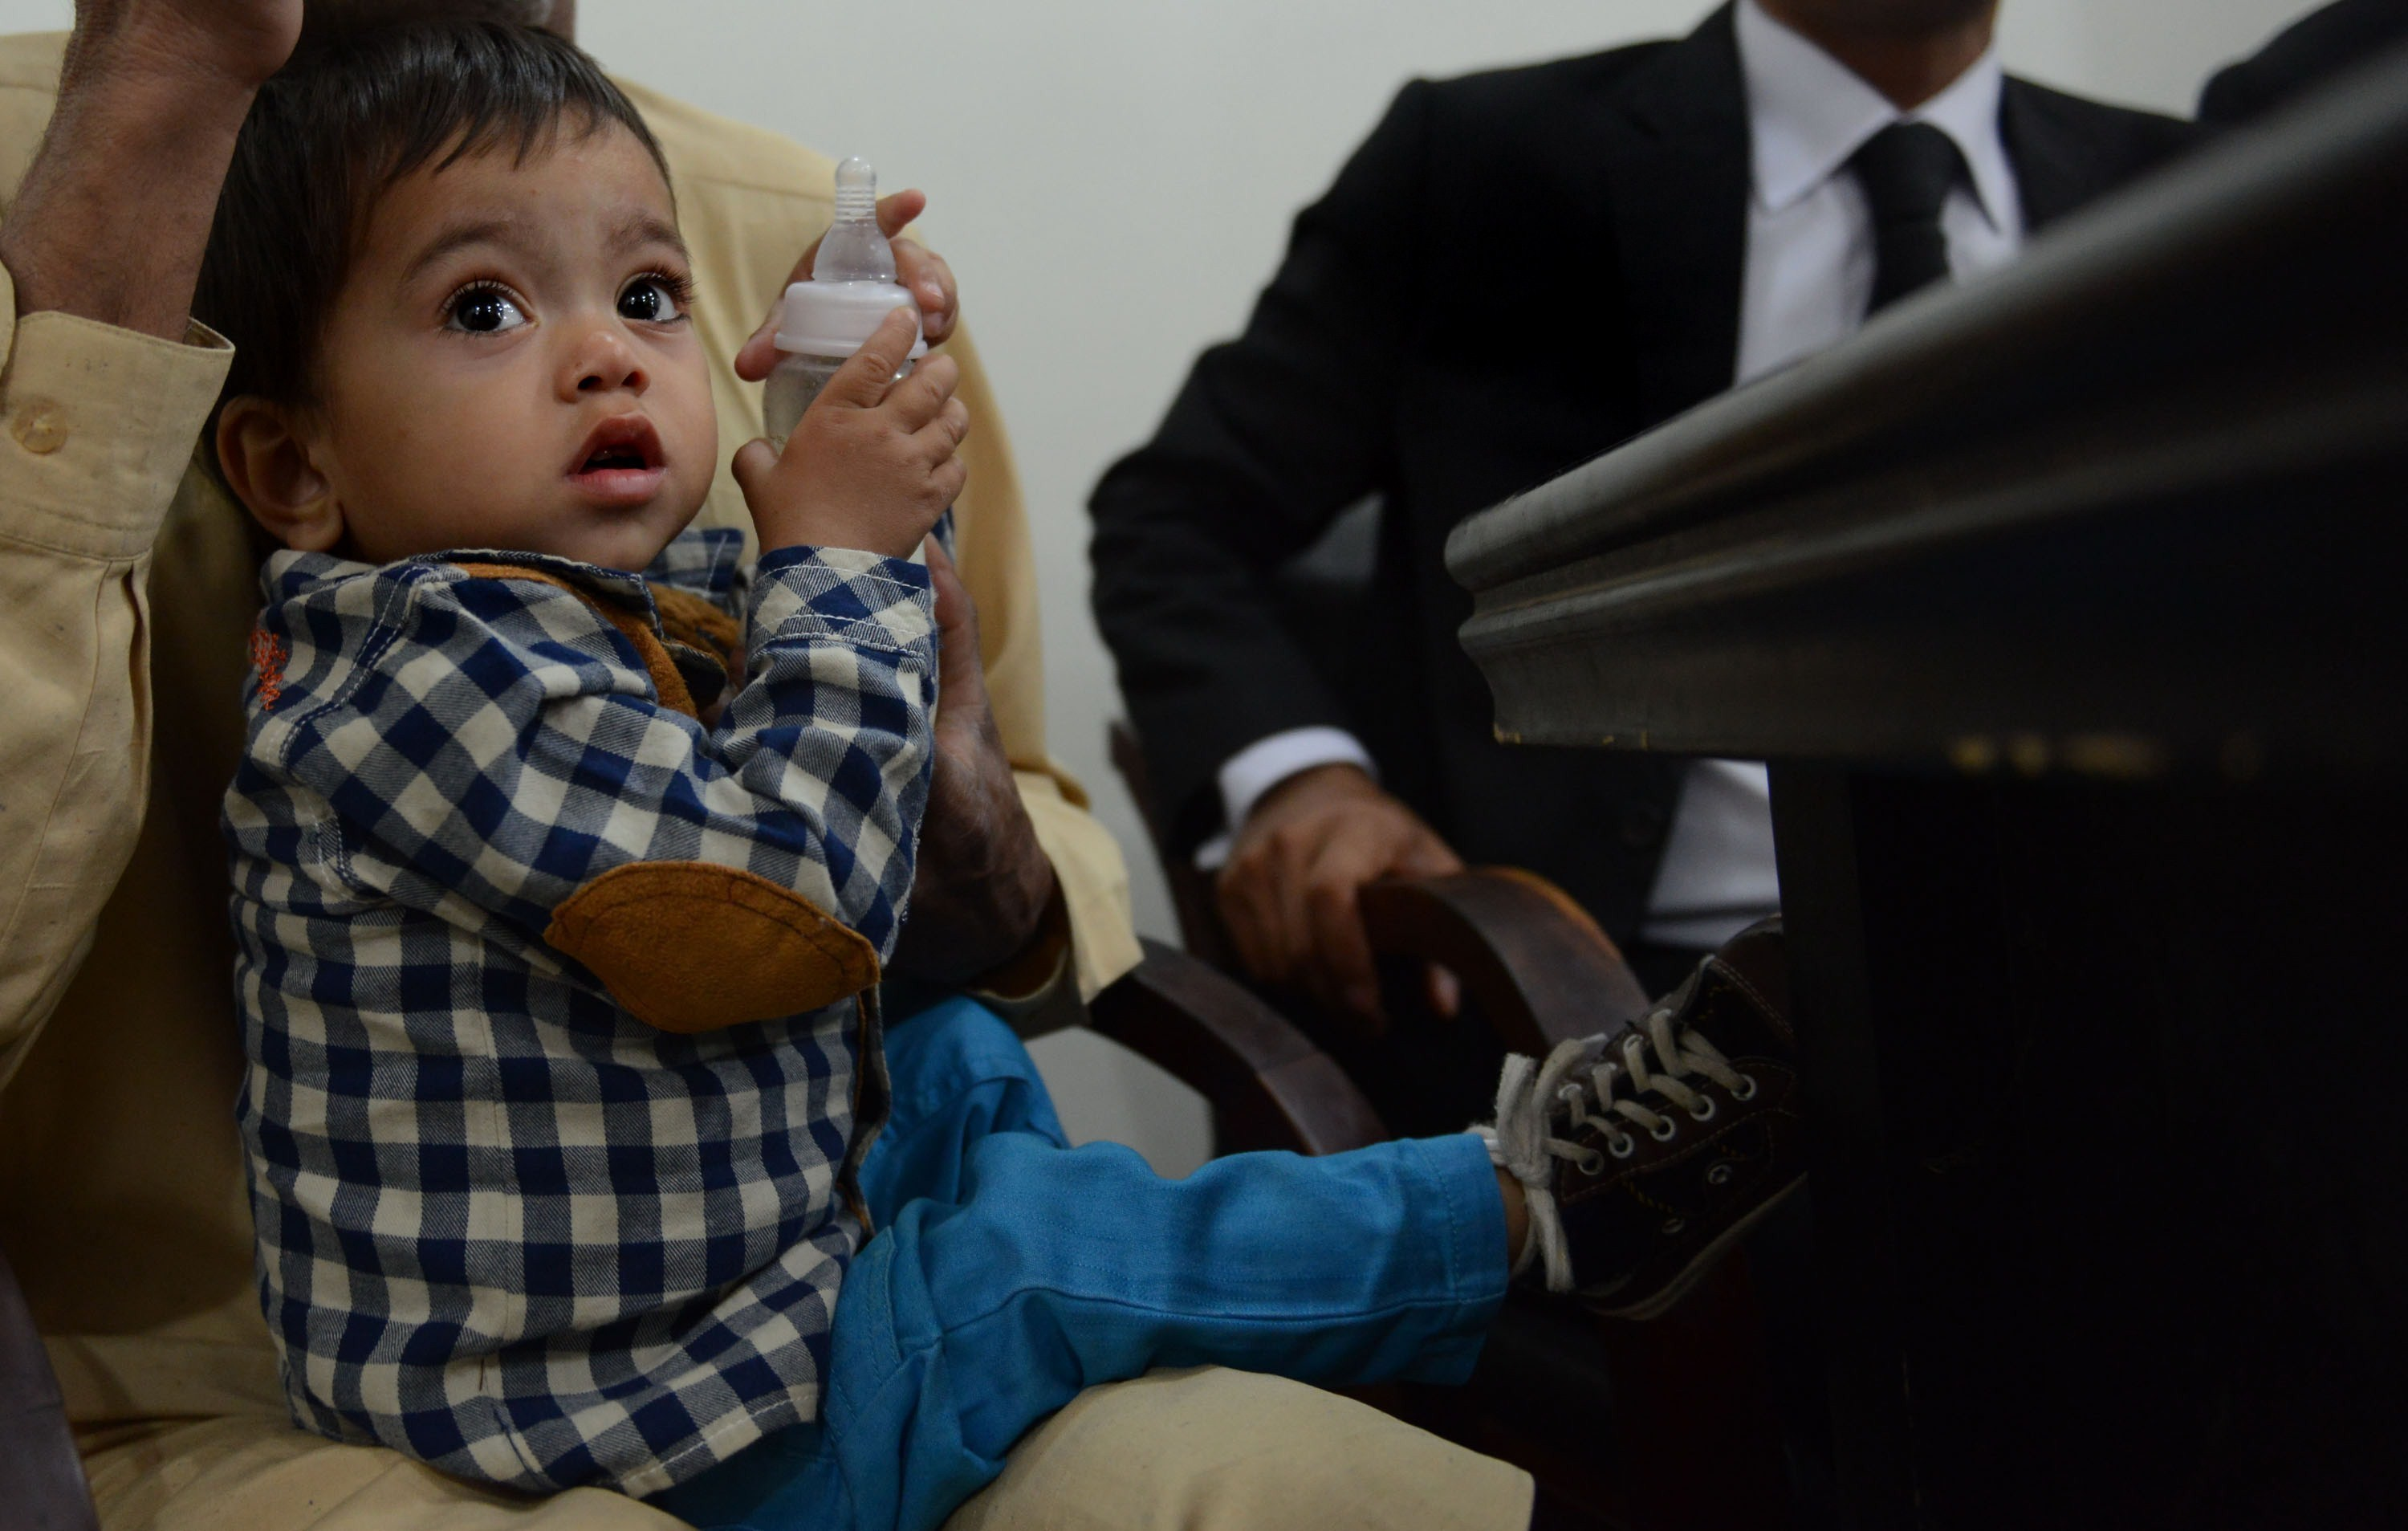 Pakistani toddler Mohammad Musa, seen here sitting in his grandfather Muhammad Yasin's lap at a court hearing in Lahore. A court threw out charges of attempted murder against the toddler Saturday.